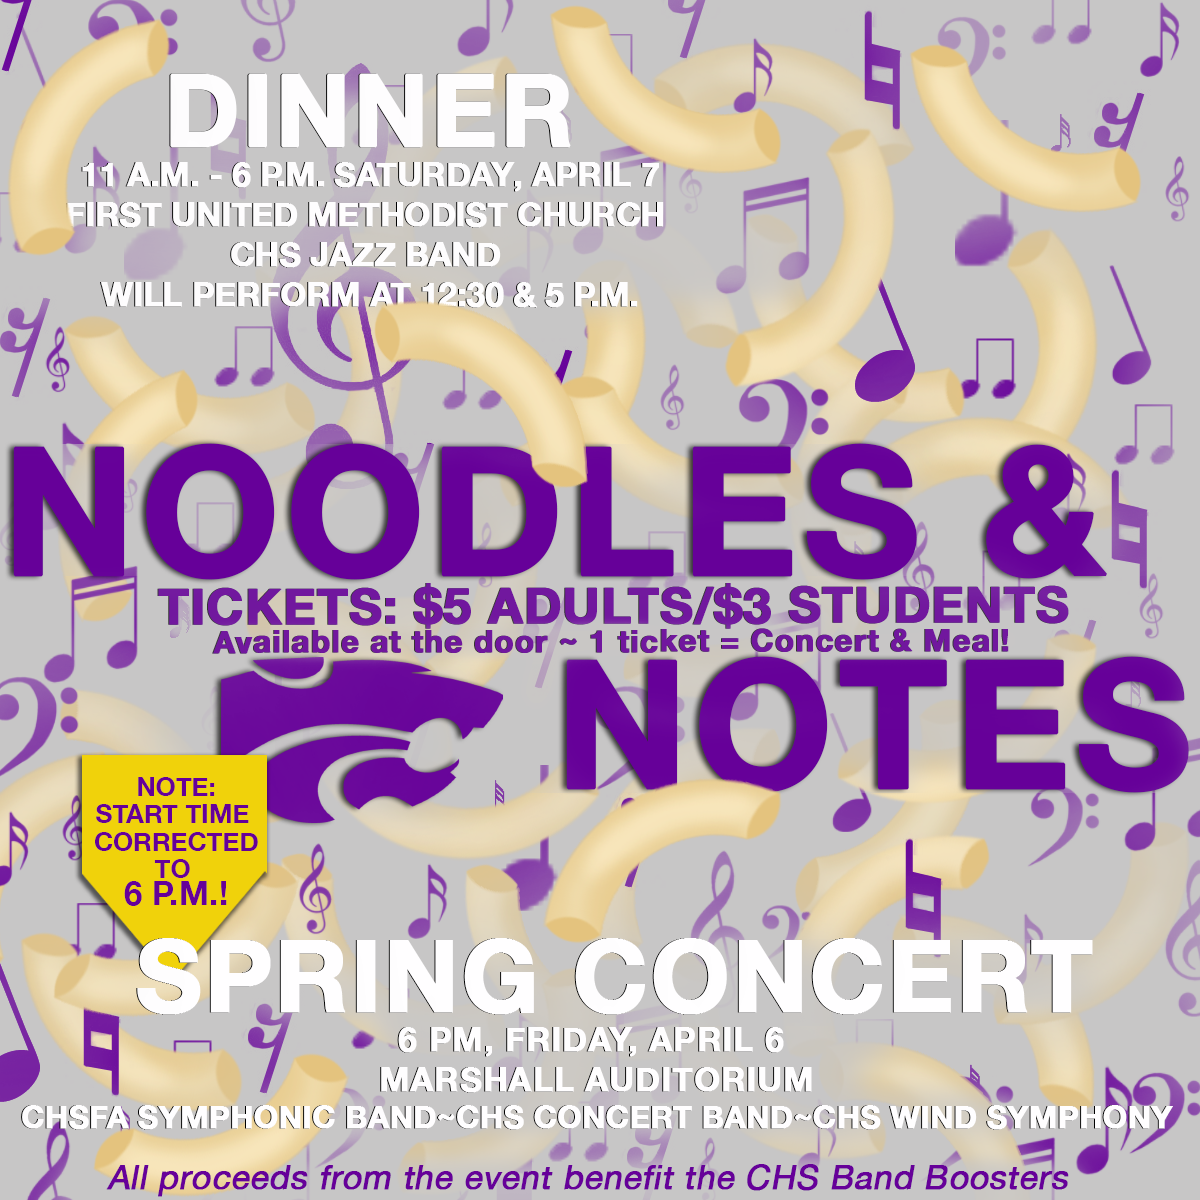 Image with text announcing 2018 Noodles & Notes